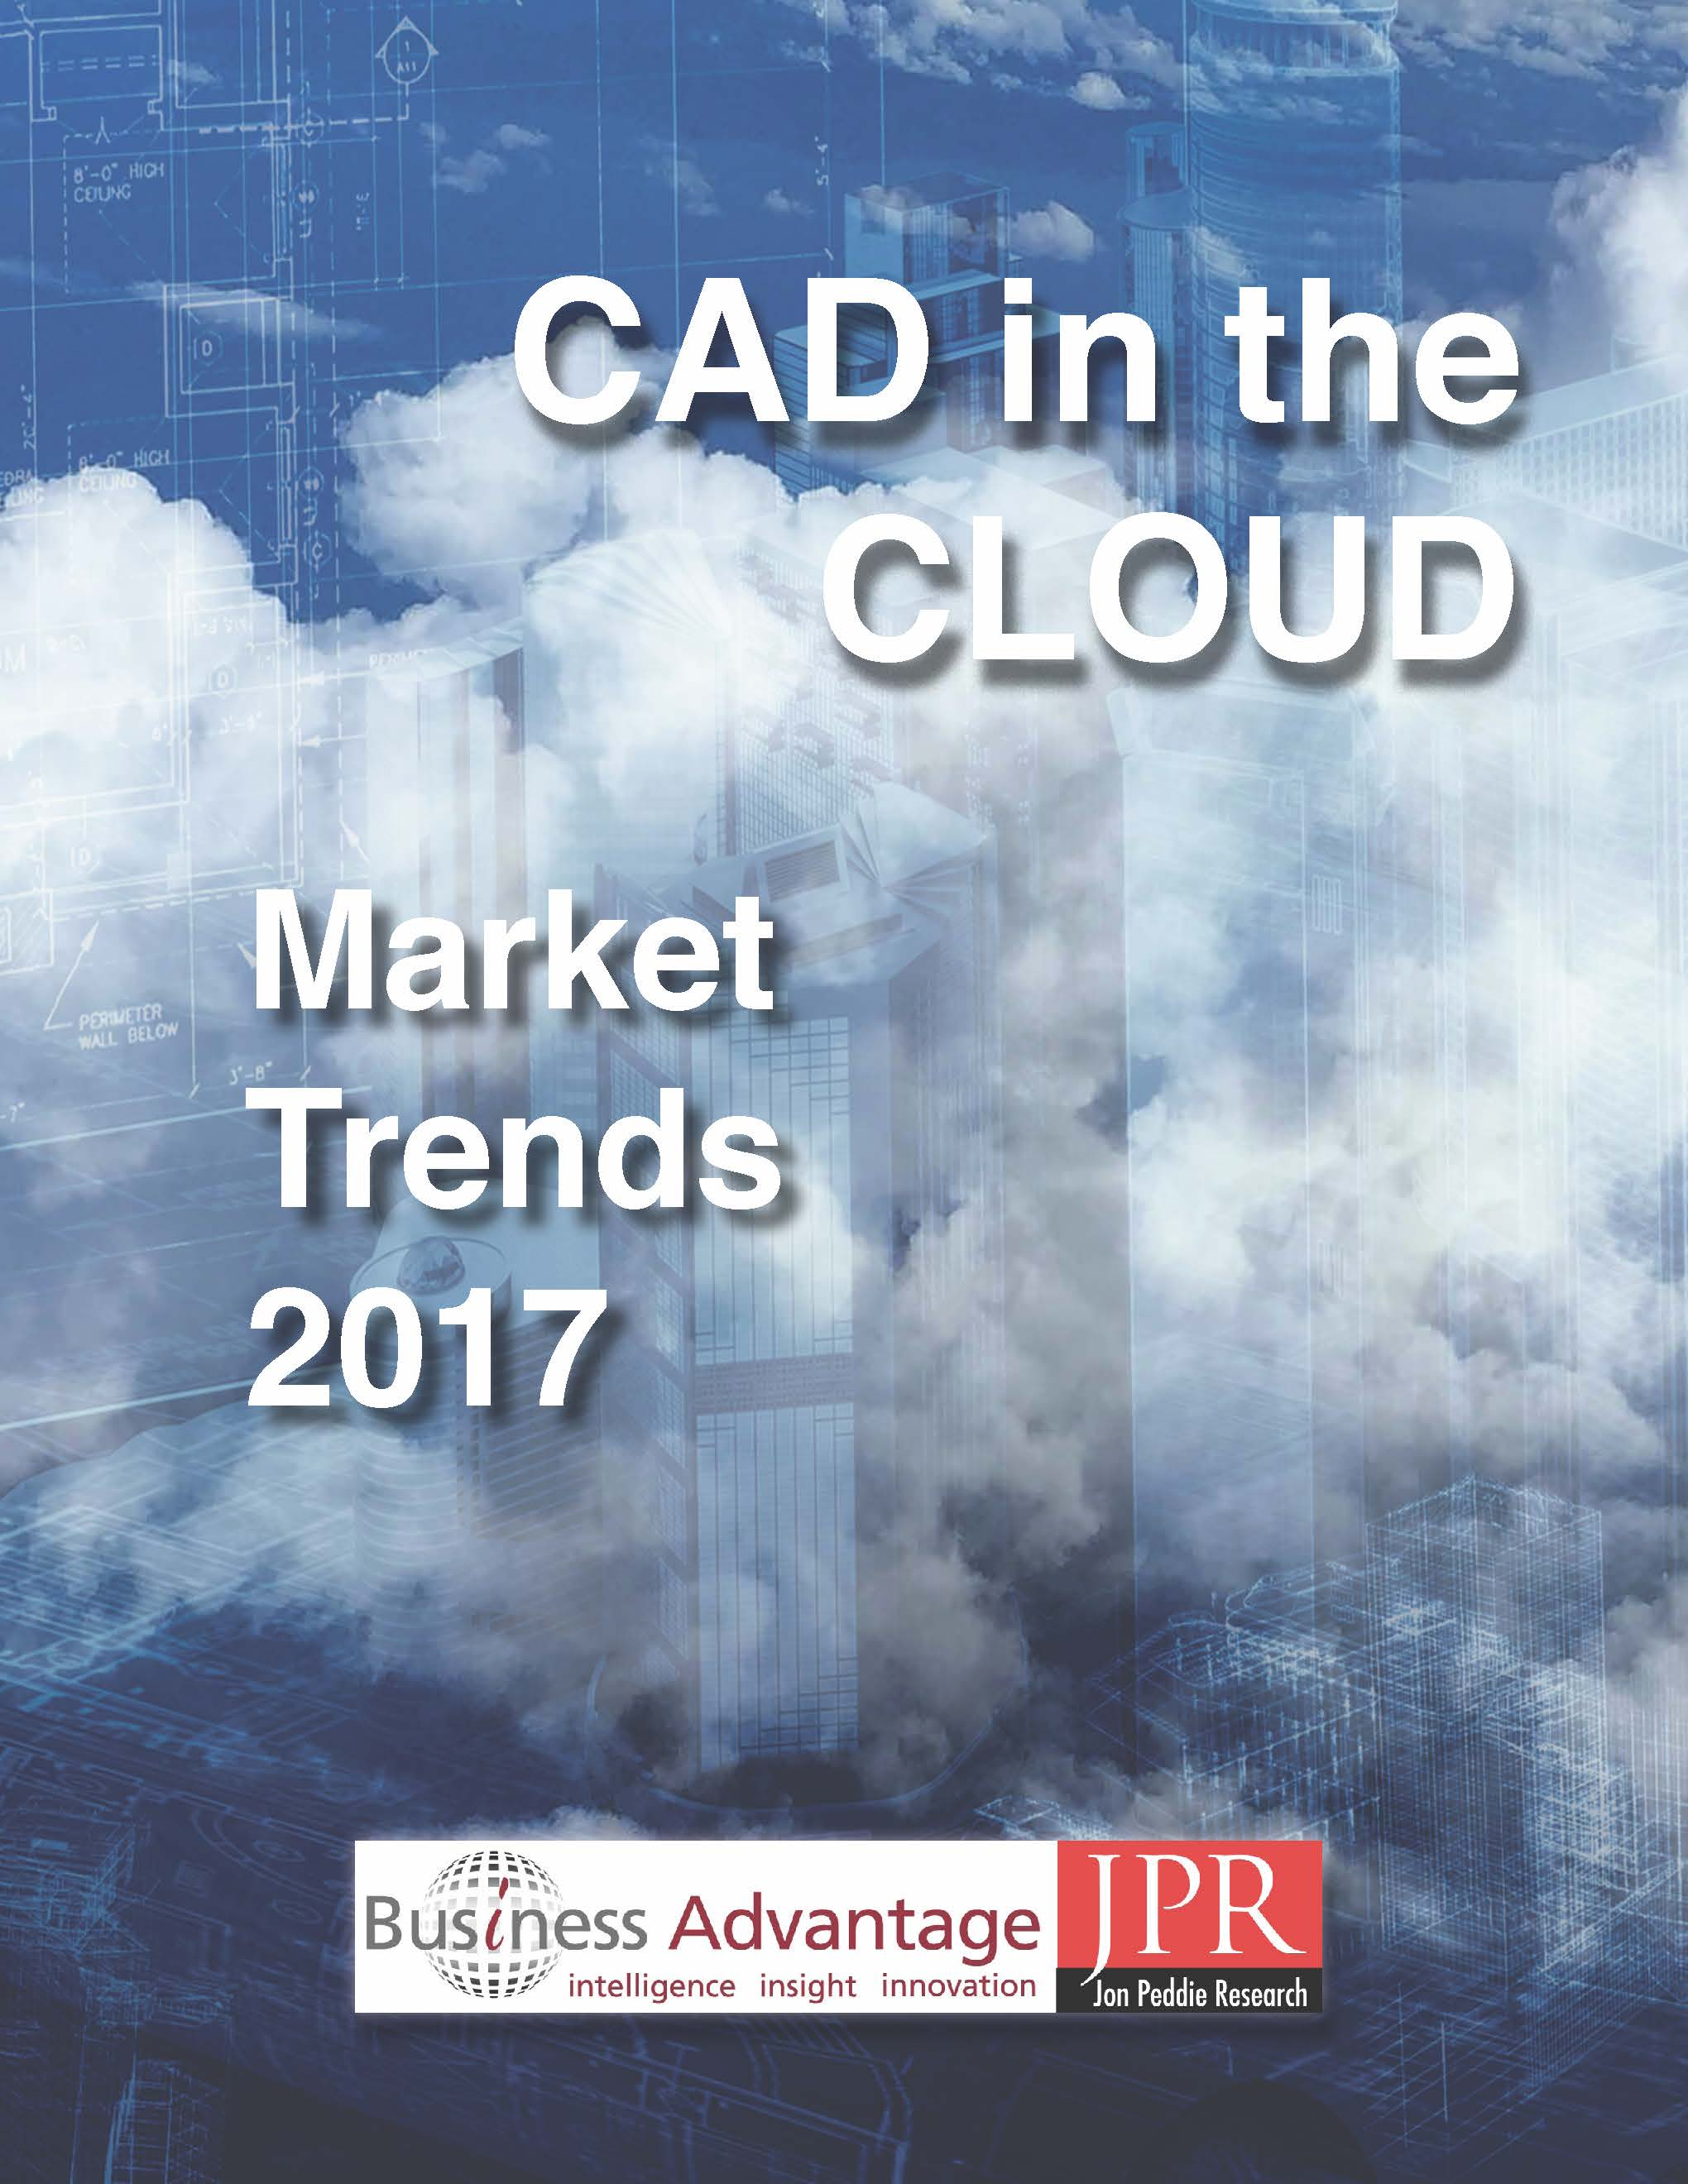 CAD in the Cloud - Market Trends 2017 Report